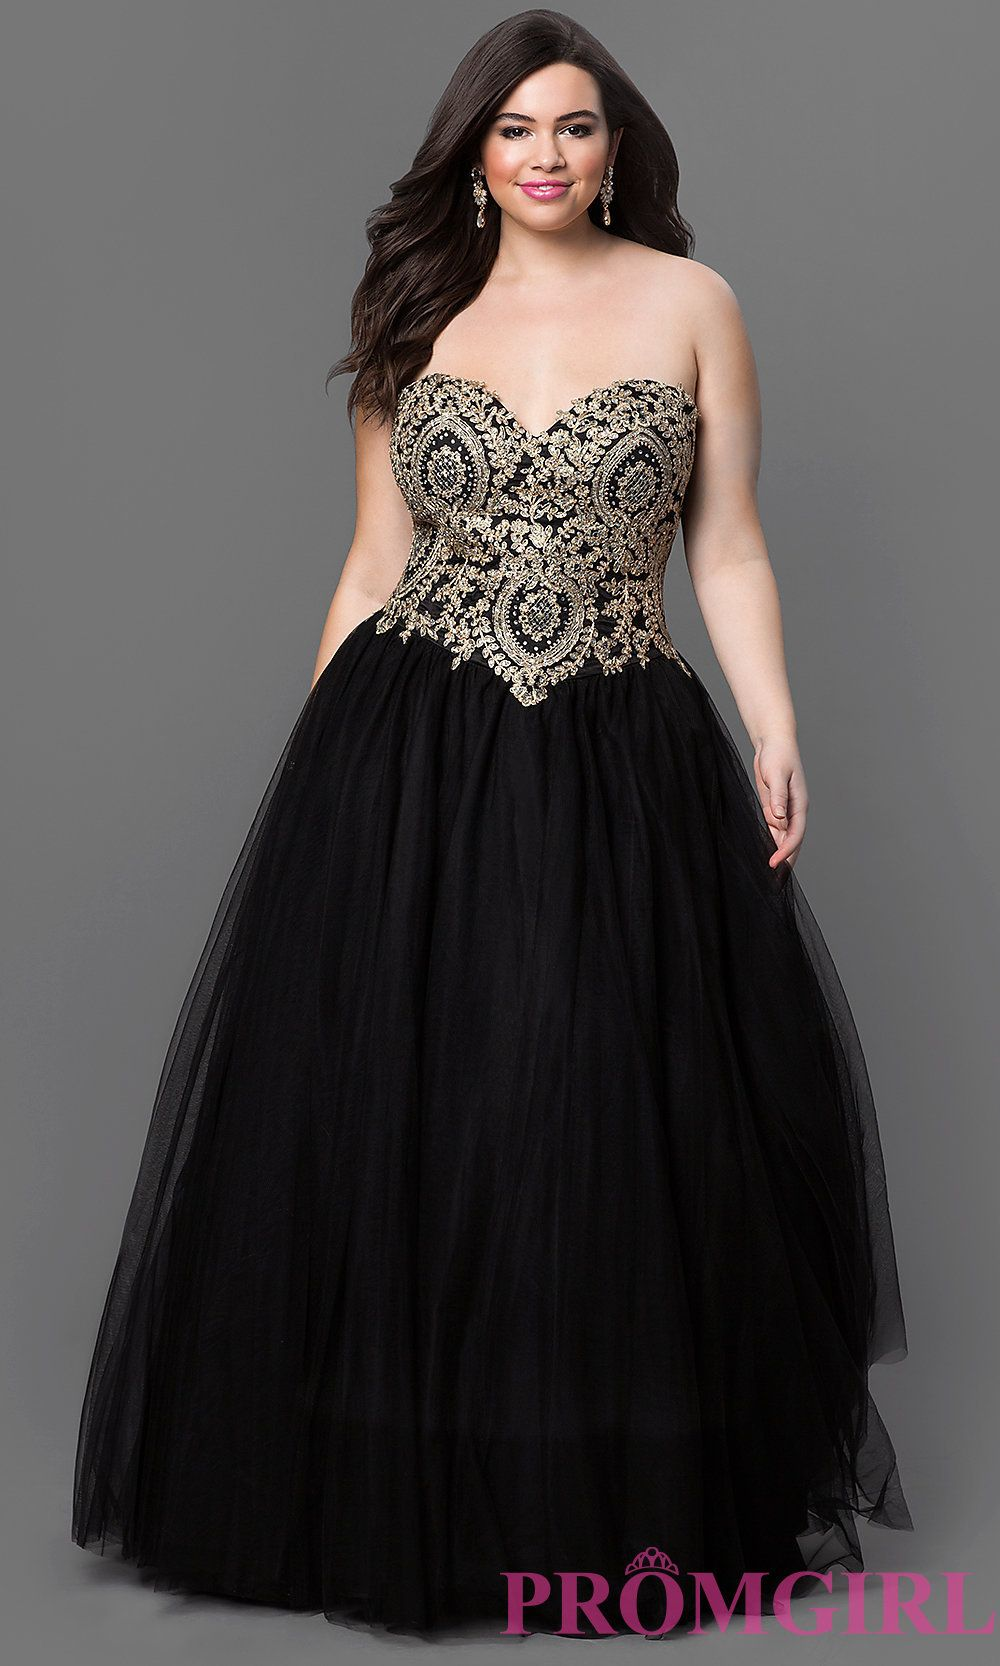 Big beautiful black girls u plus size stores that carry prom